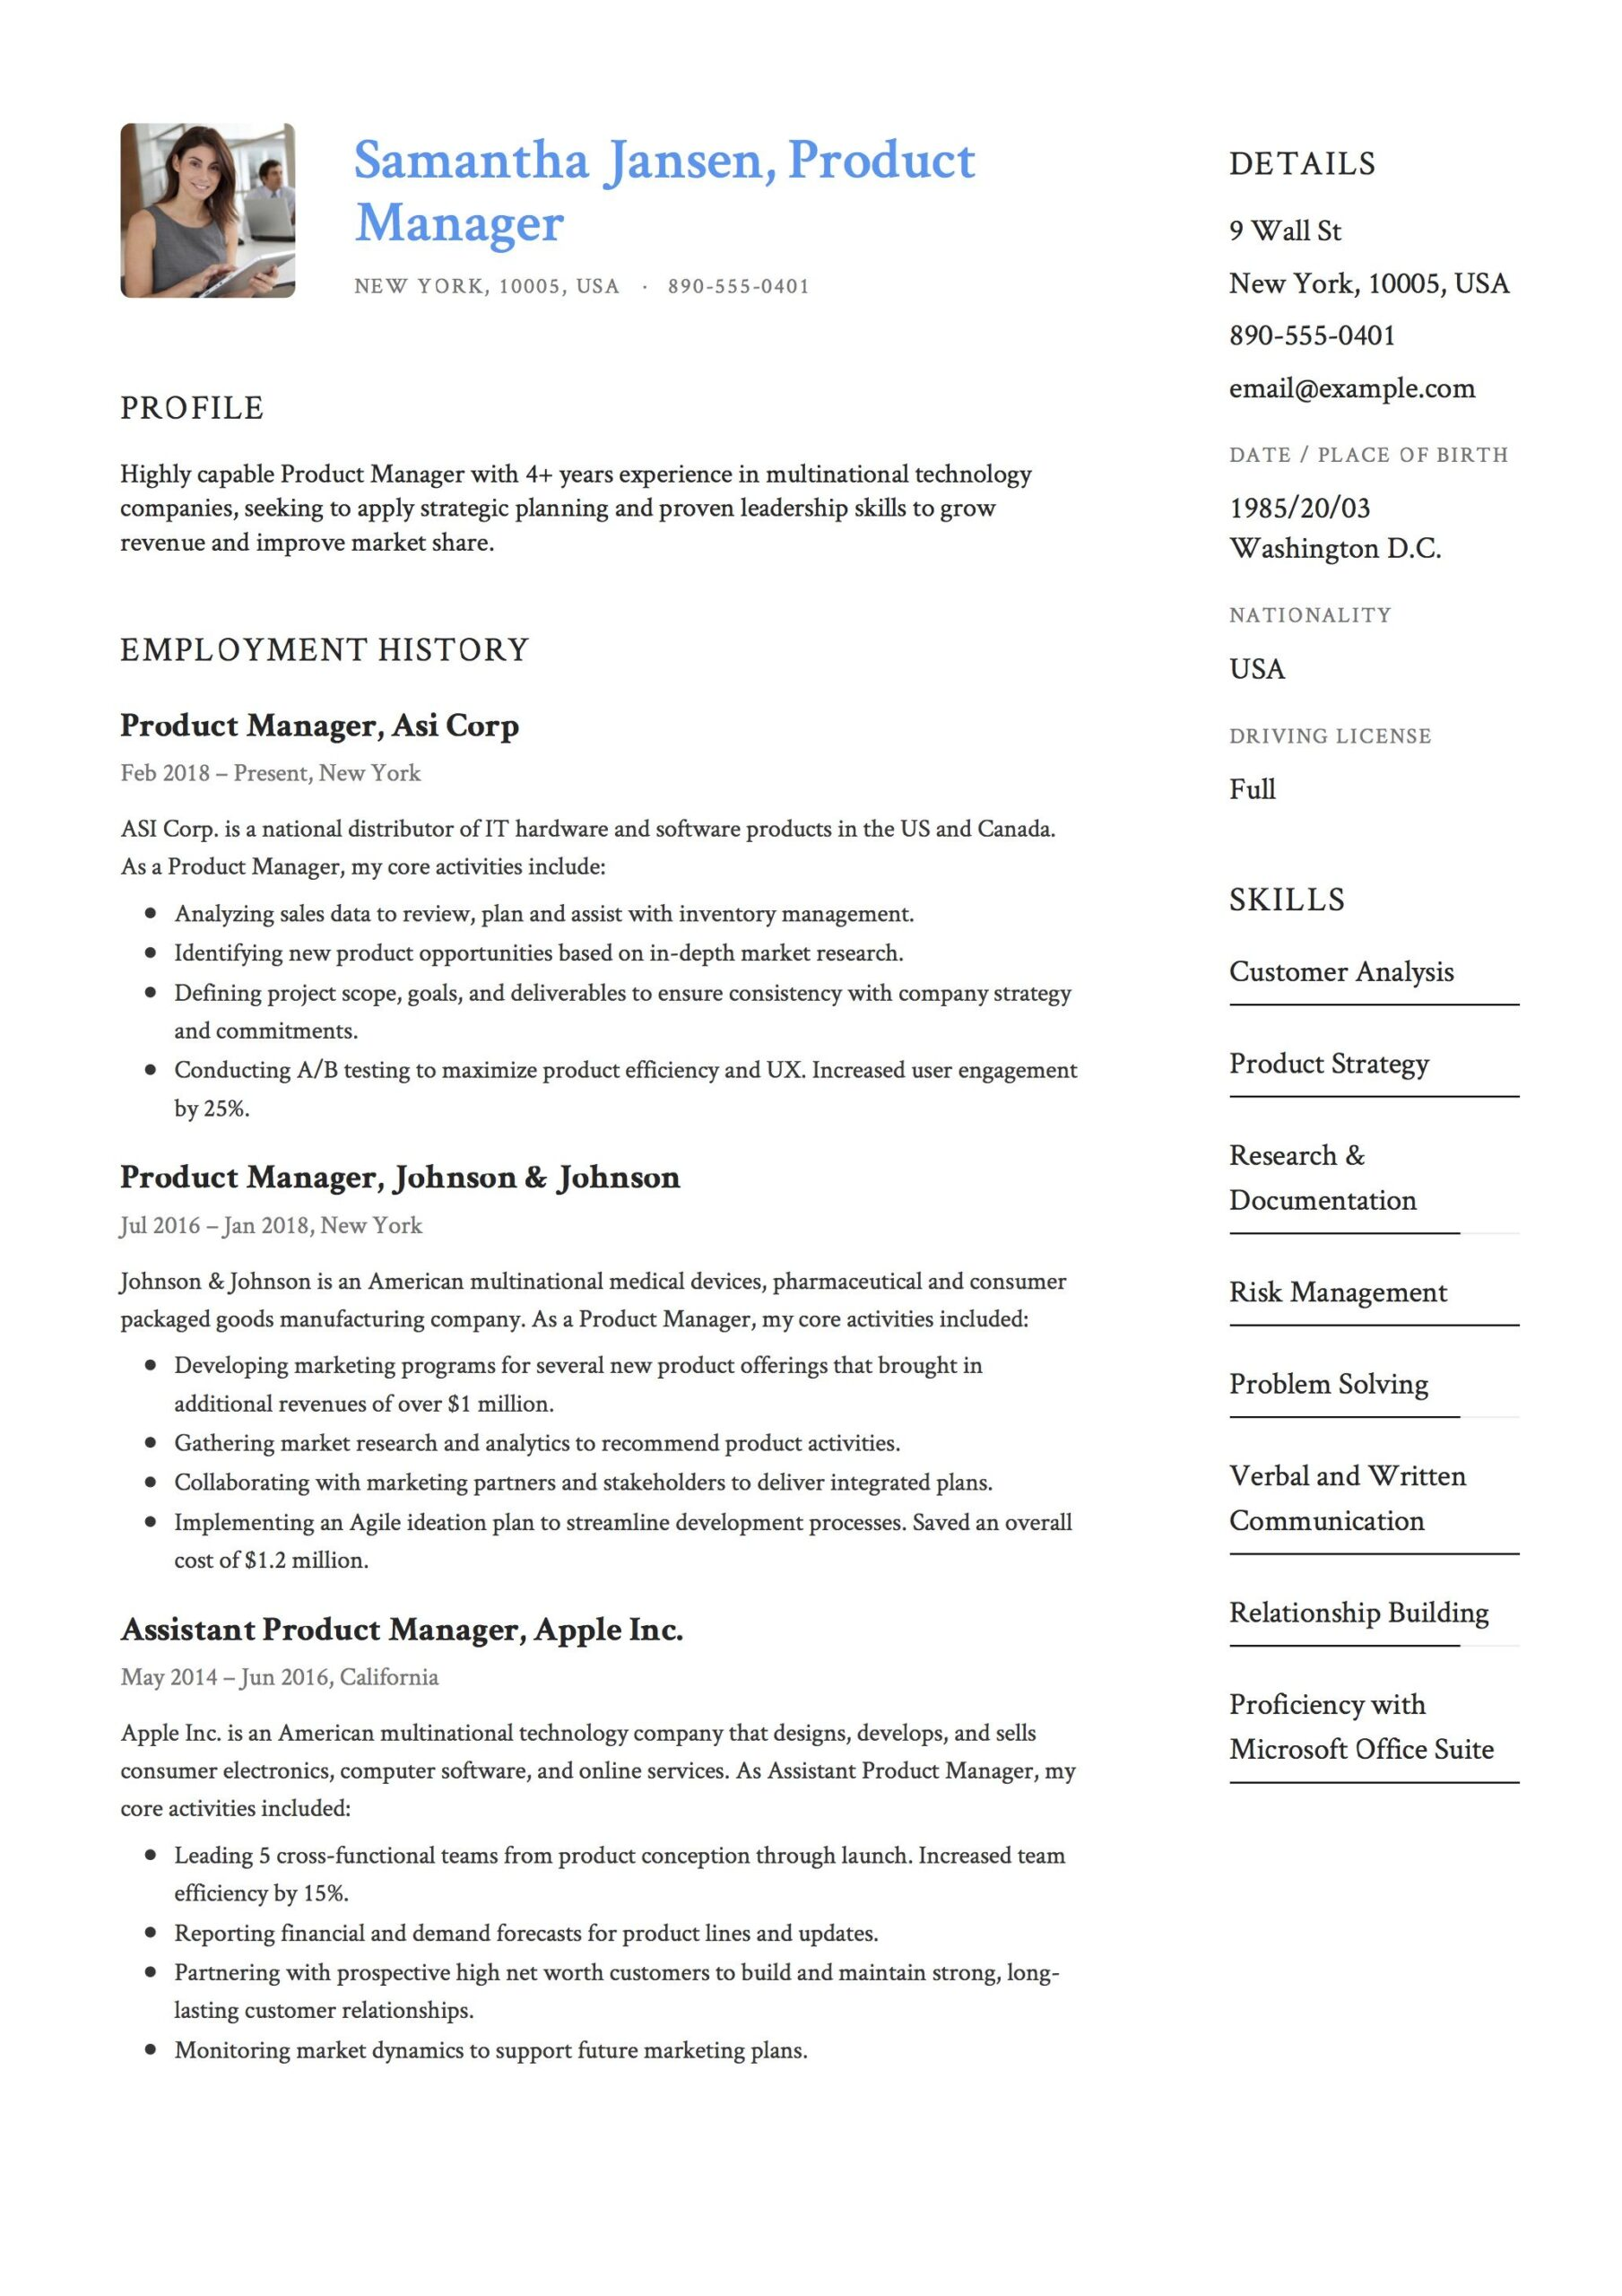 product manager resume sample template example cv formal design examples guide healthcare Resume Healthcare Product Manager Resume